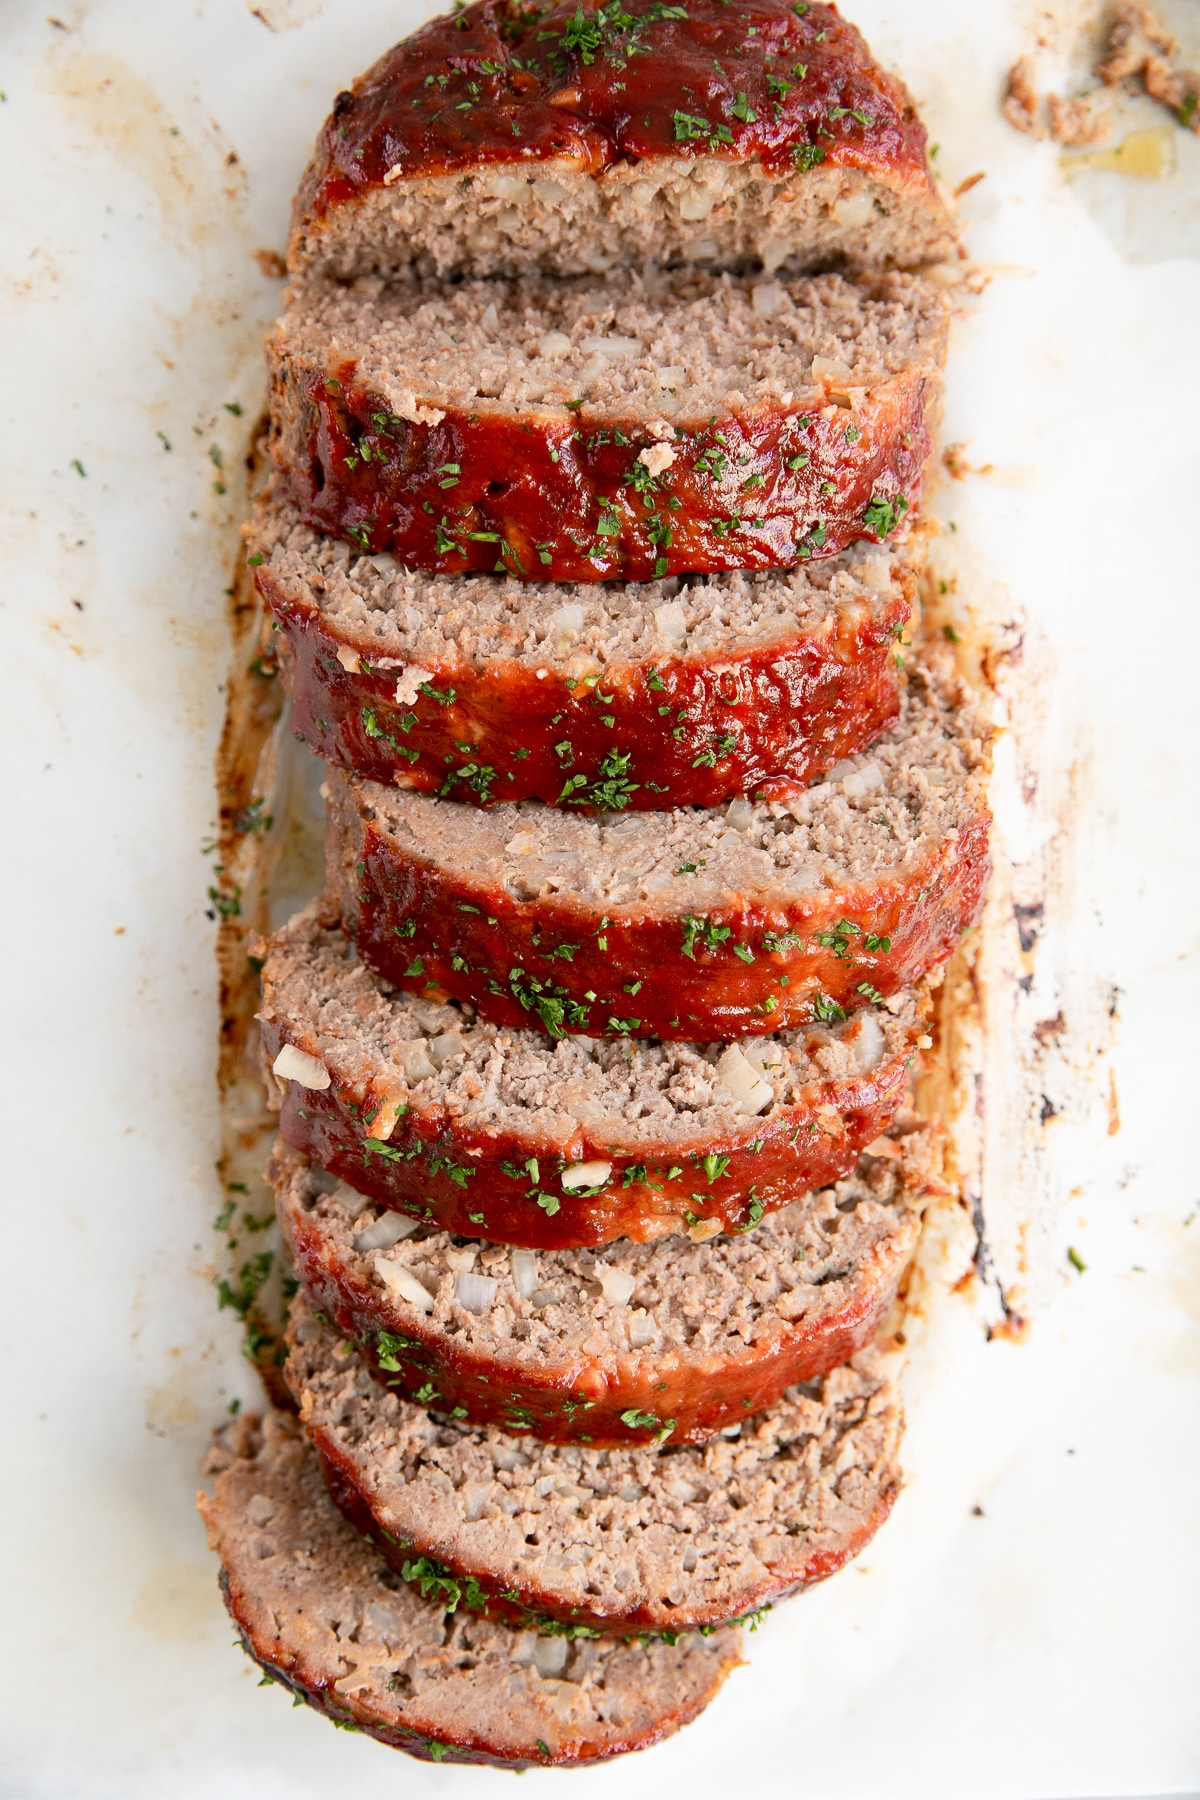 The Best Meatloaf Recipe How To Make Meatloaf The Forked Spoon